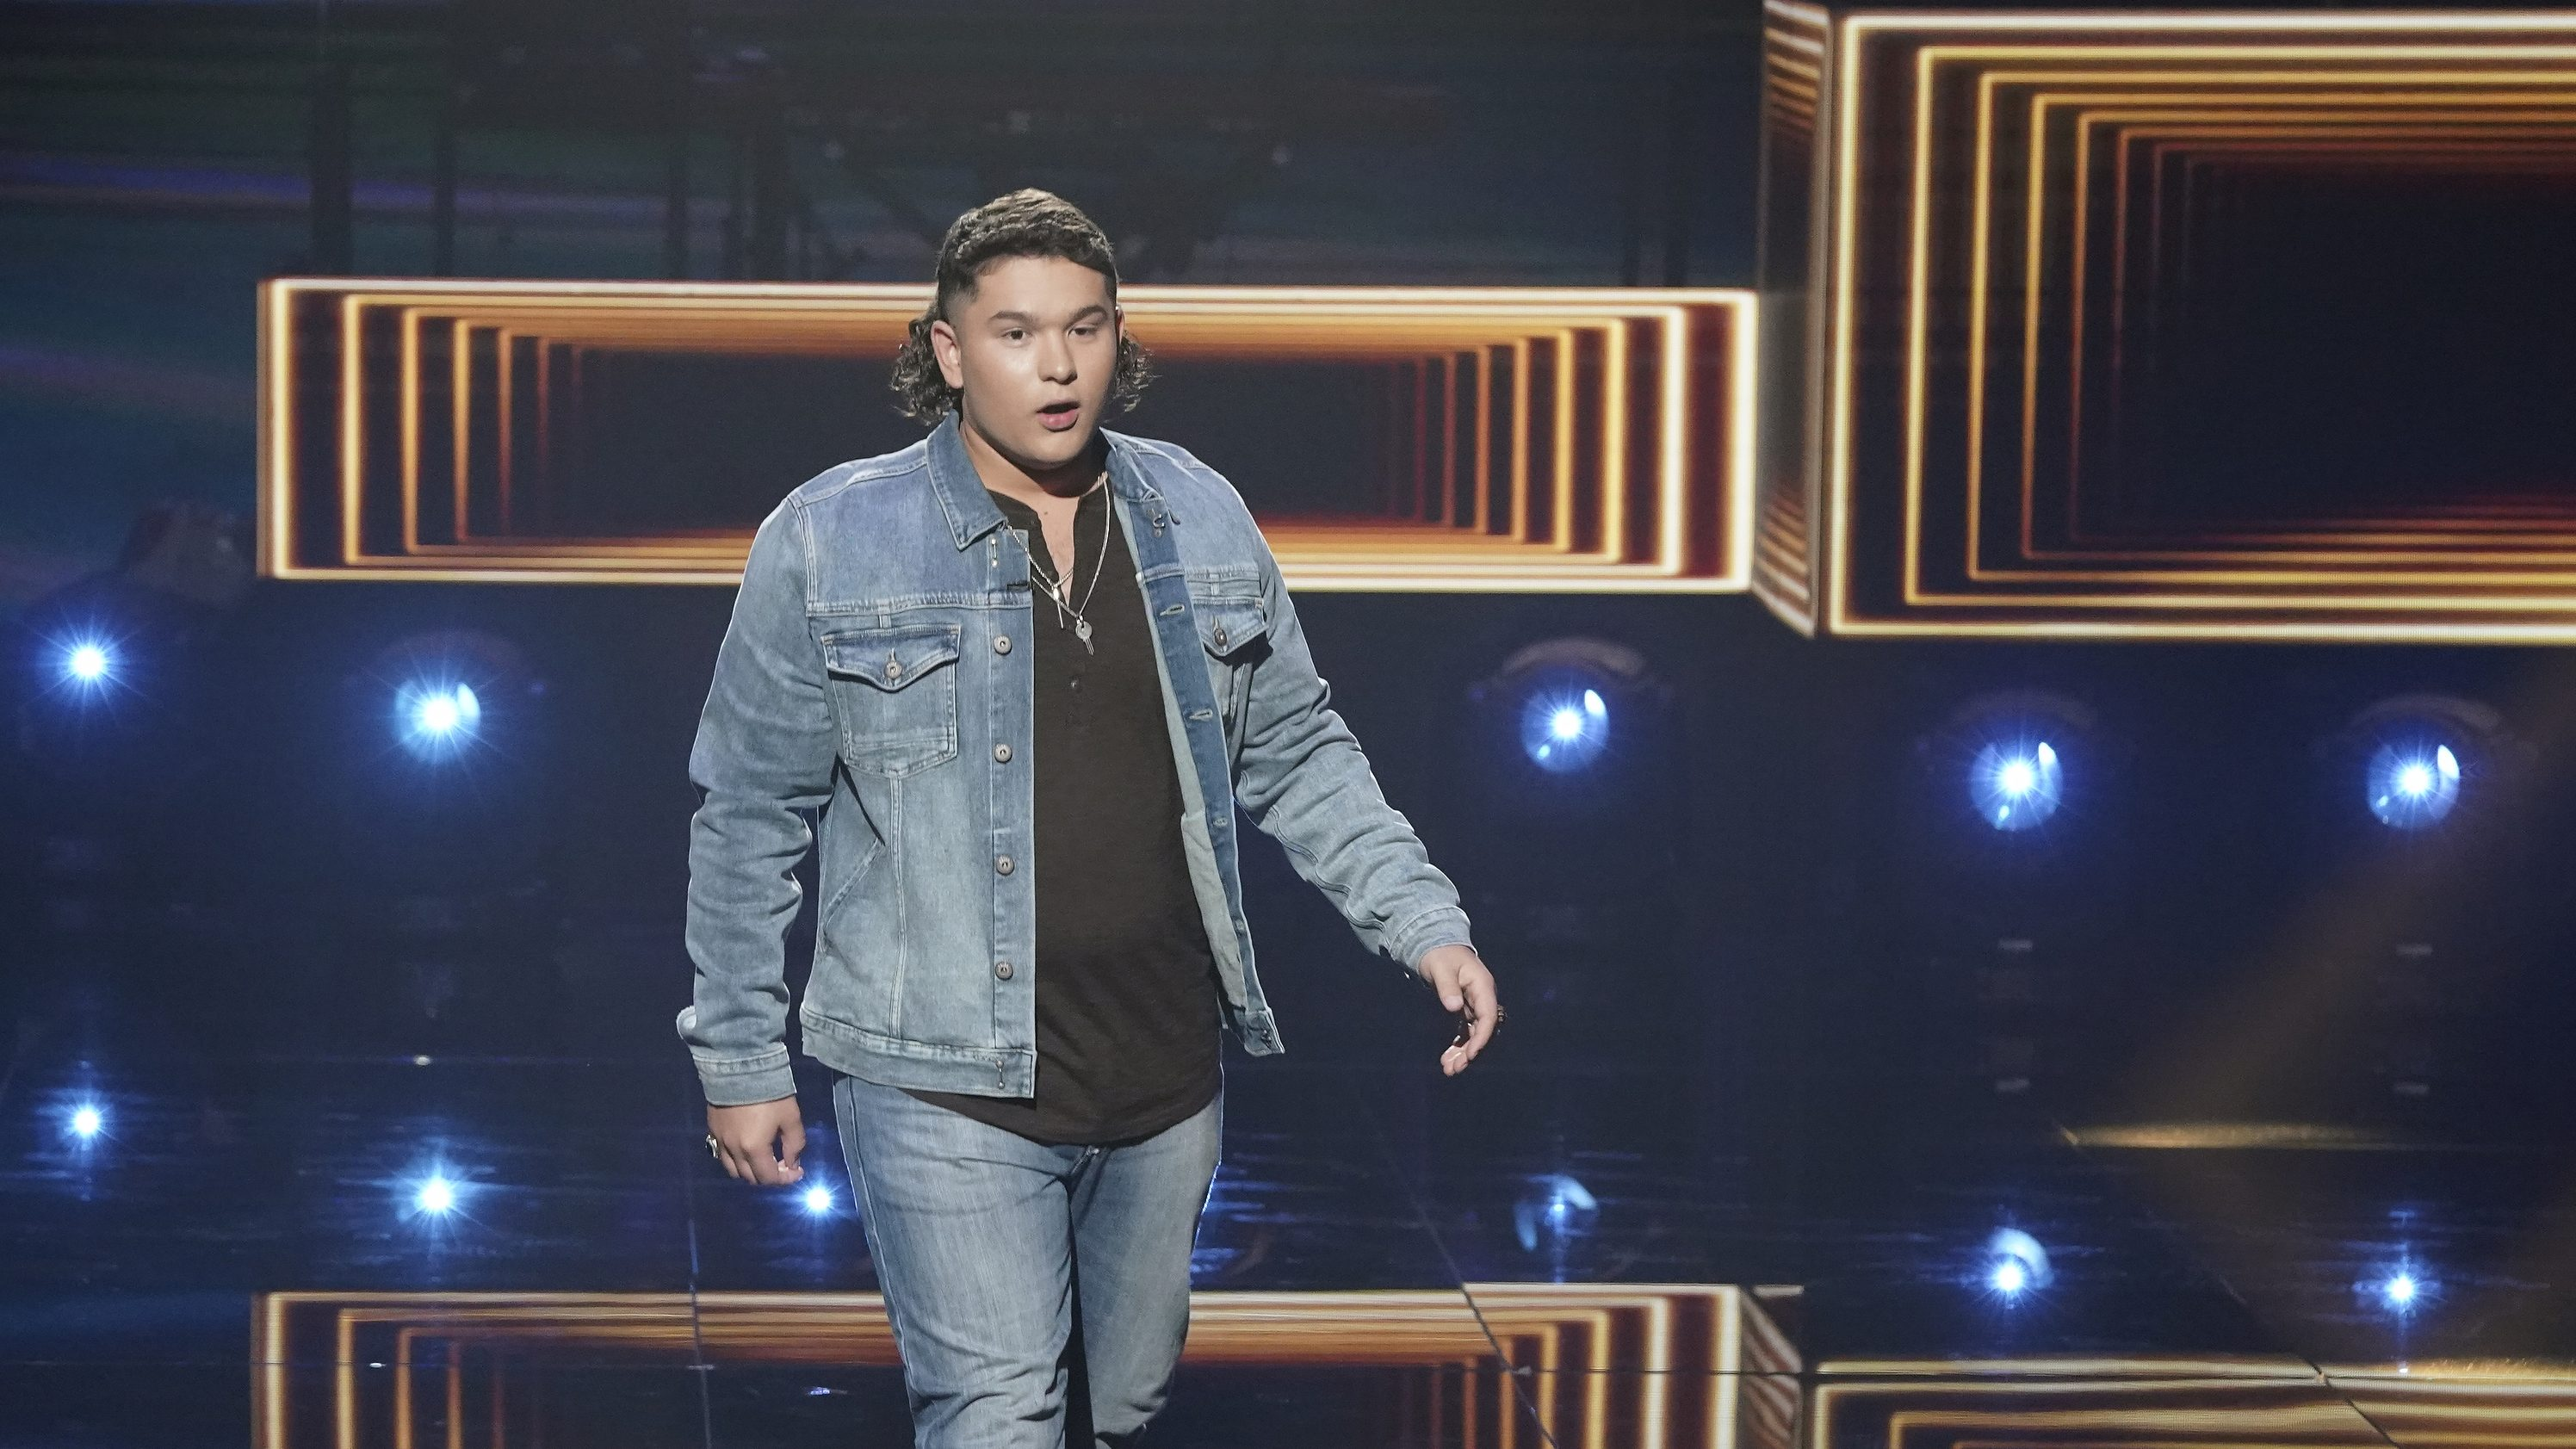 'American Idol' Finalist Caleb Kennedy Cut From Season 19 After Racially Insensitive Video Surfaces